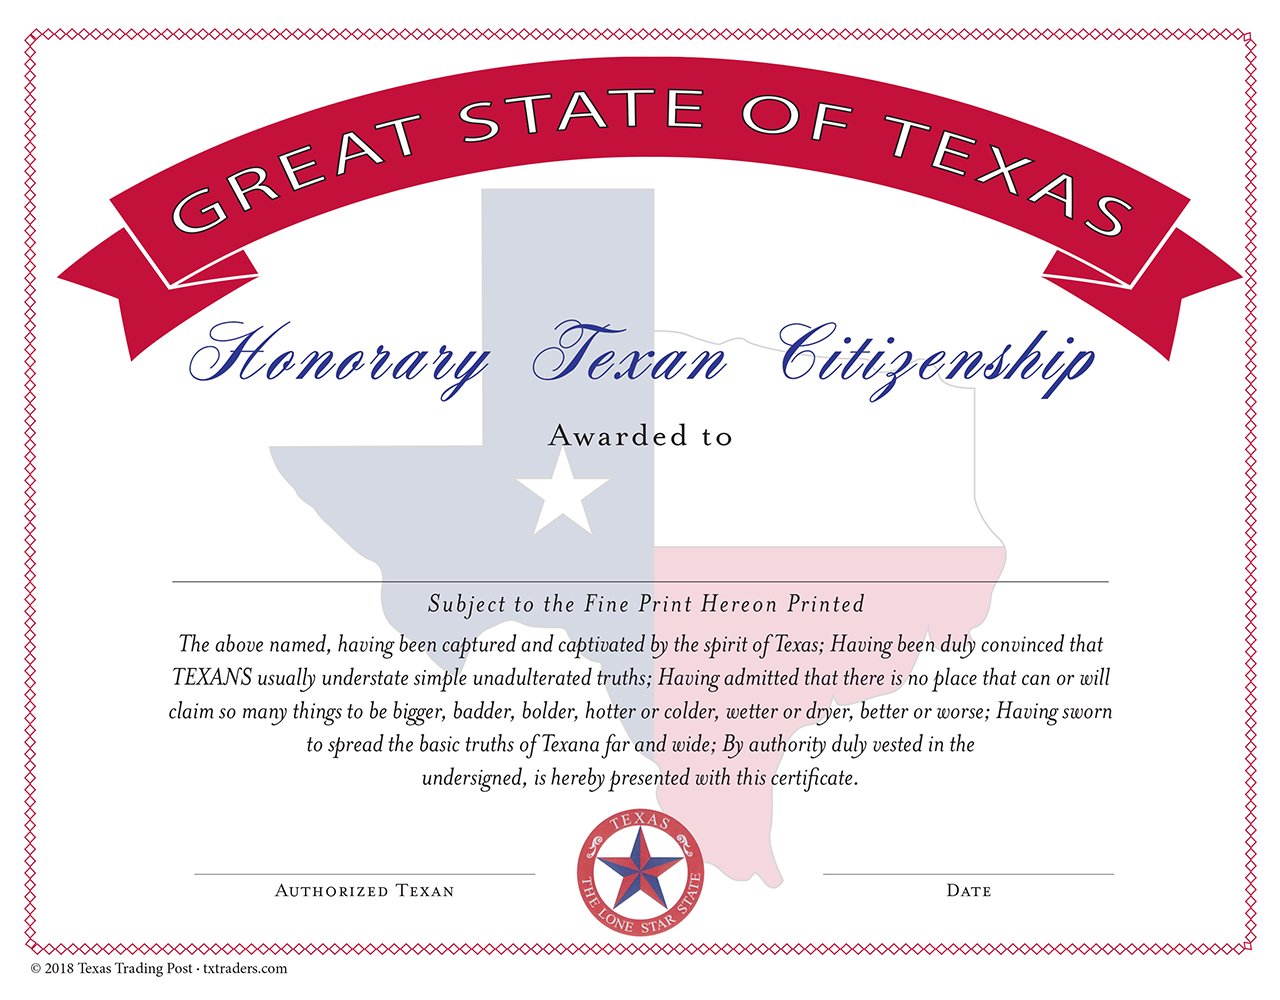 Honorary Citizen of the Great State of Texas Certificate